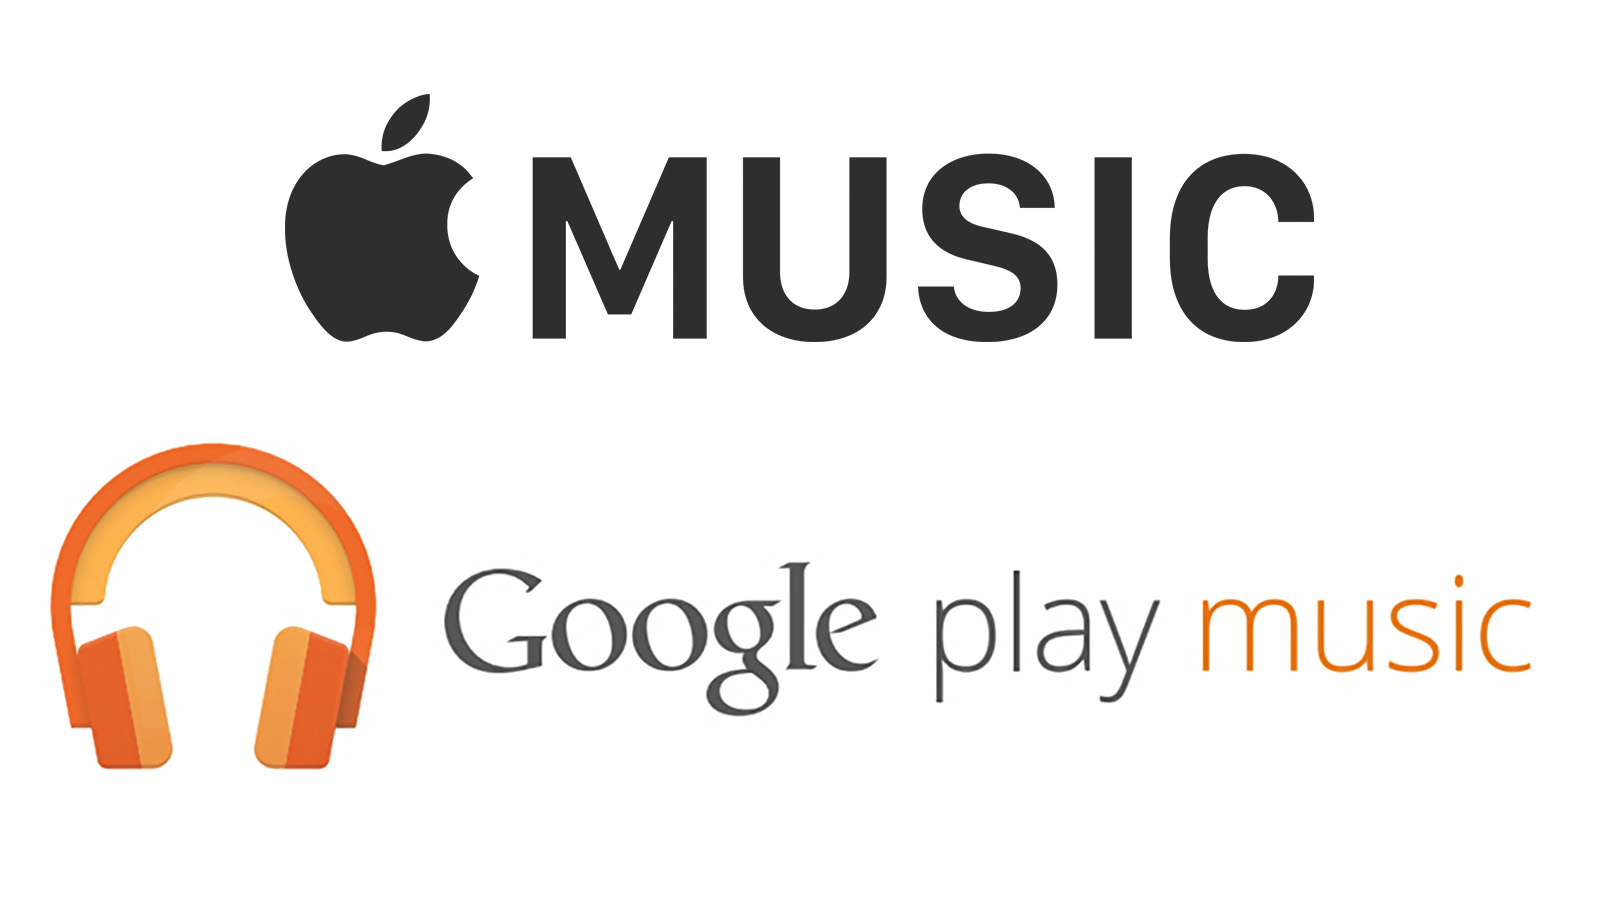 Apple Music Google Play Music 聴き放題